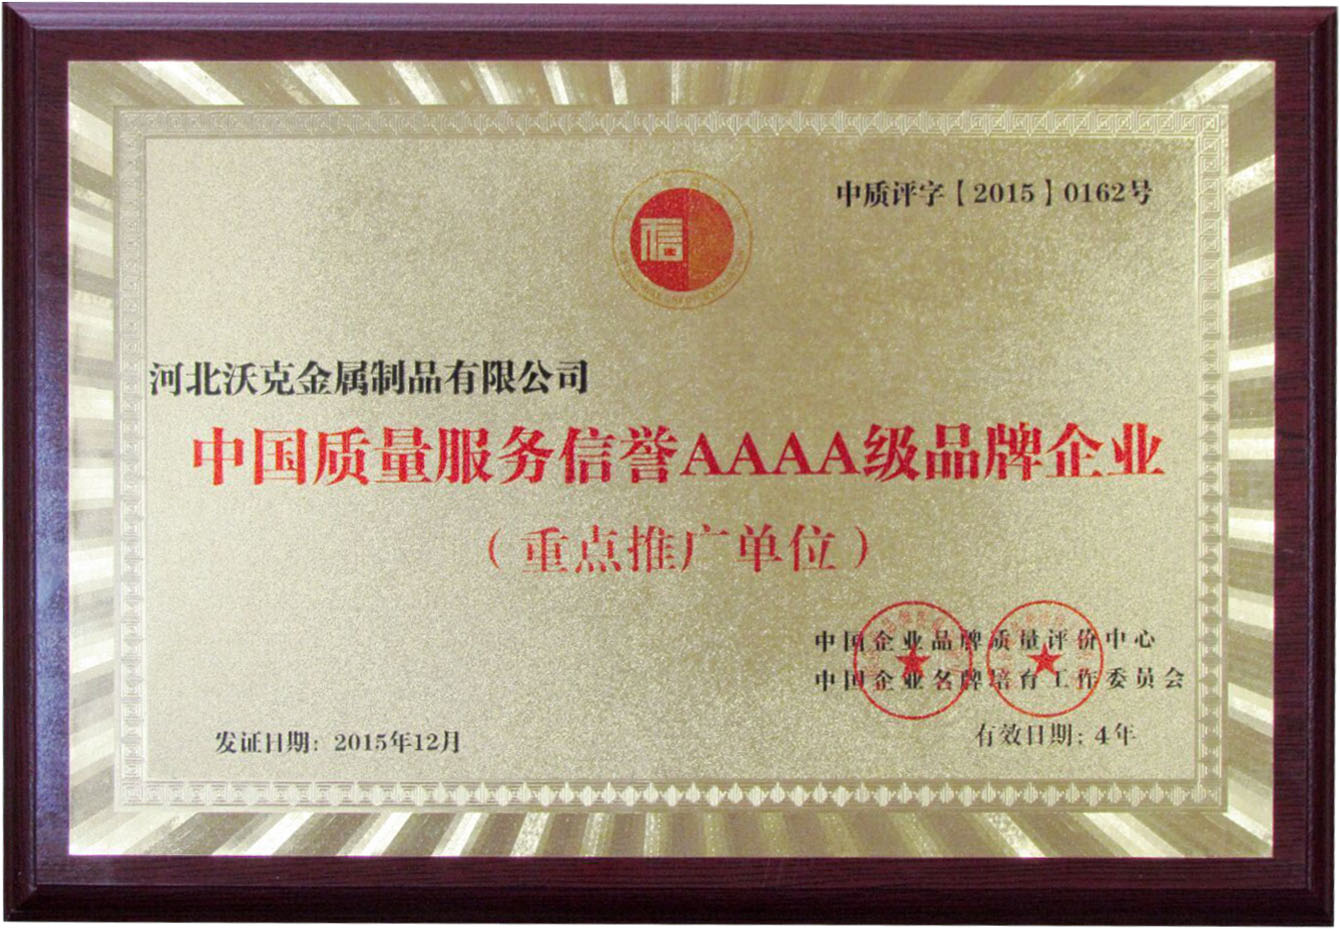 China quality service&reputation AAAA enterprise